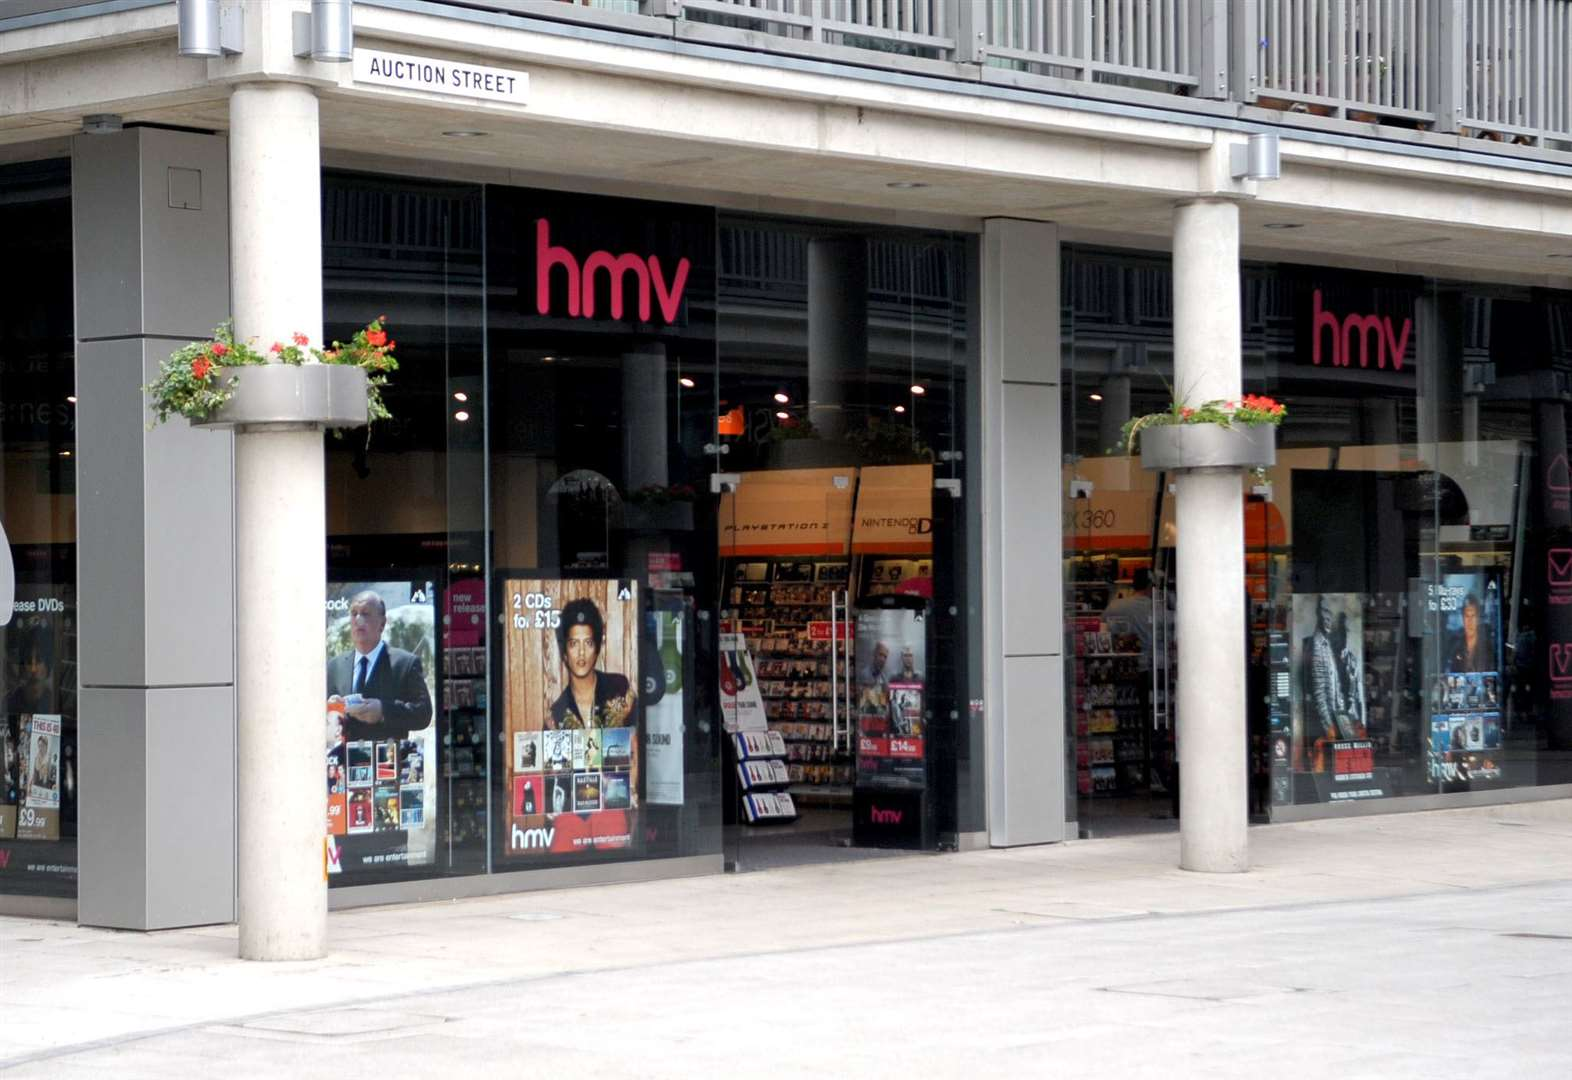 Big name brand announced to replace HMV